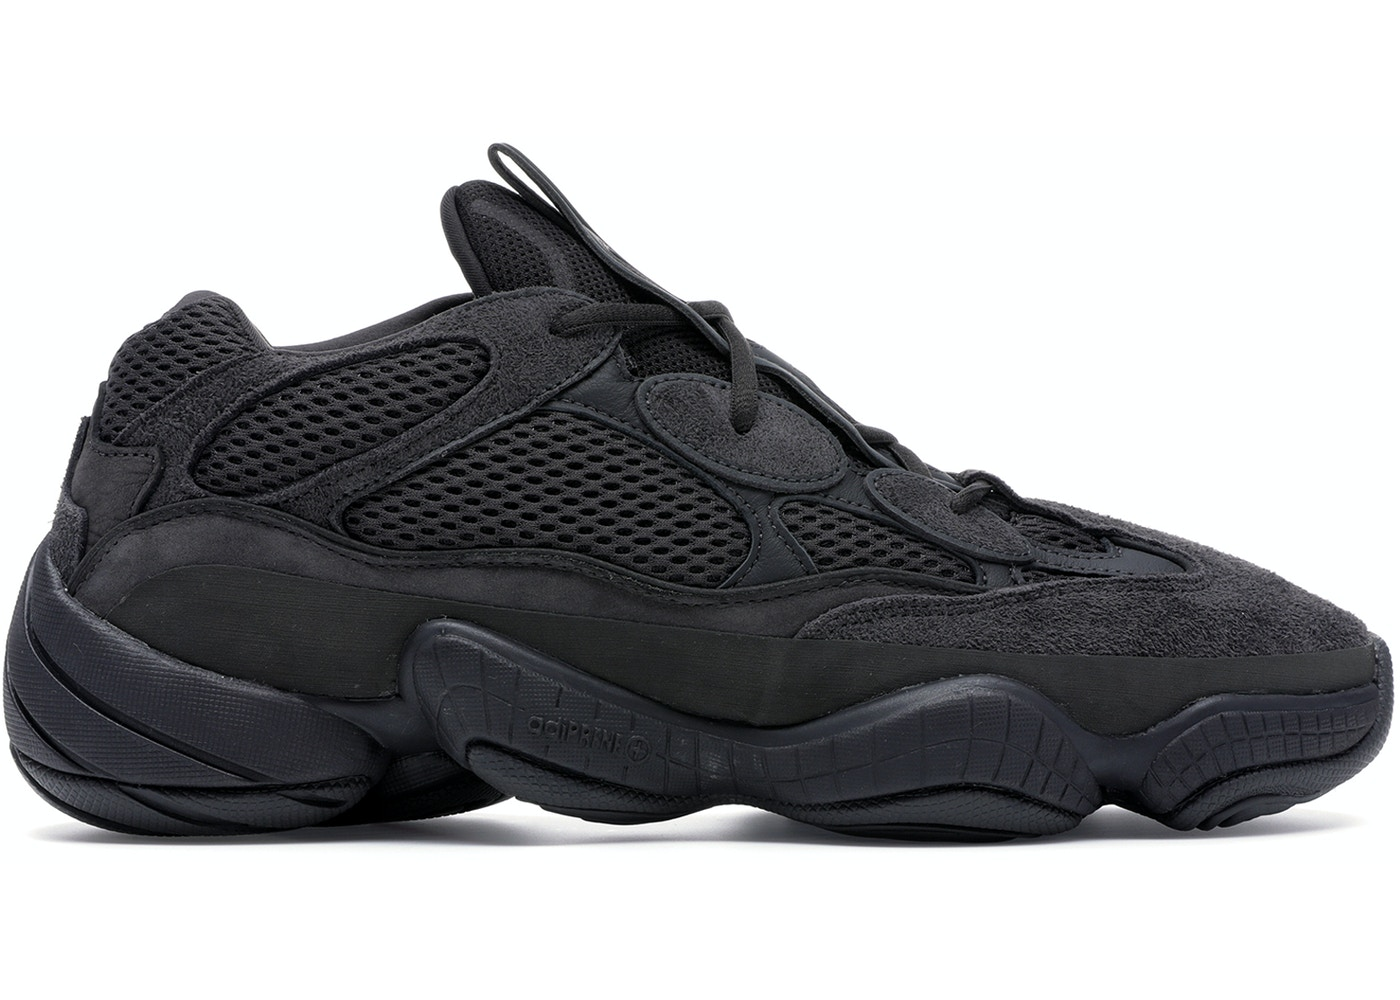 buy popular 7575b abdf1 adidas Yeezy 500 Utility Black